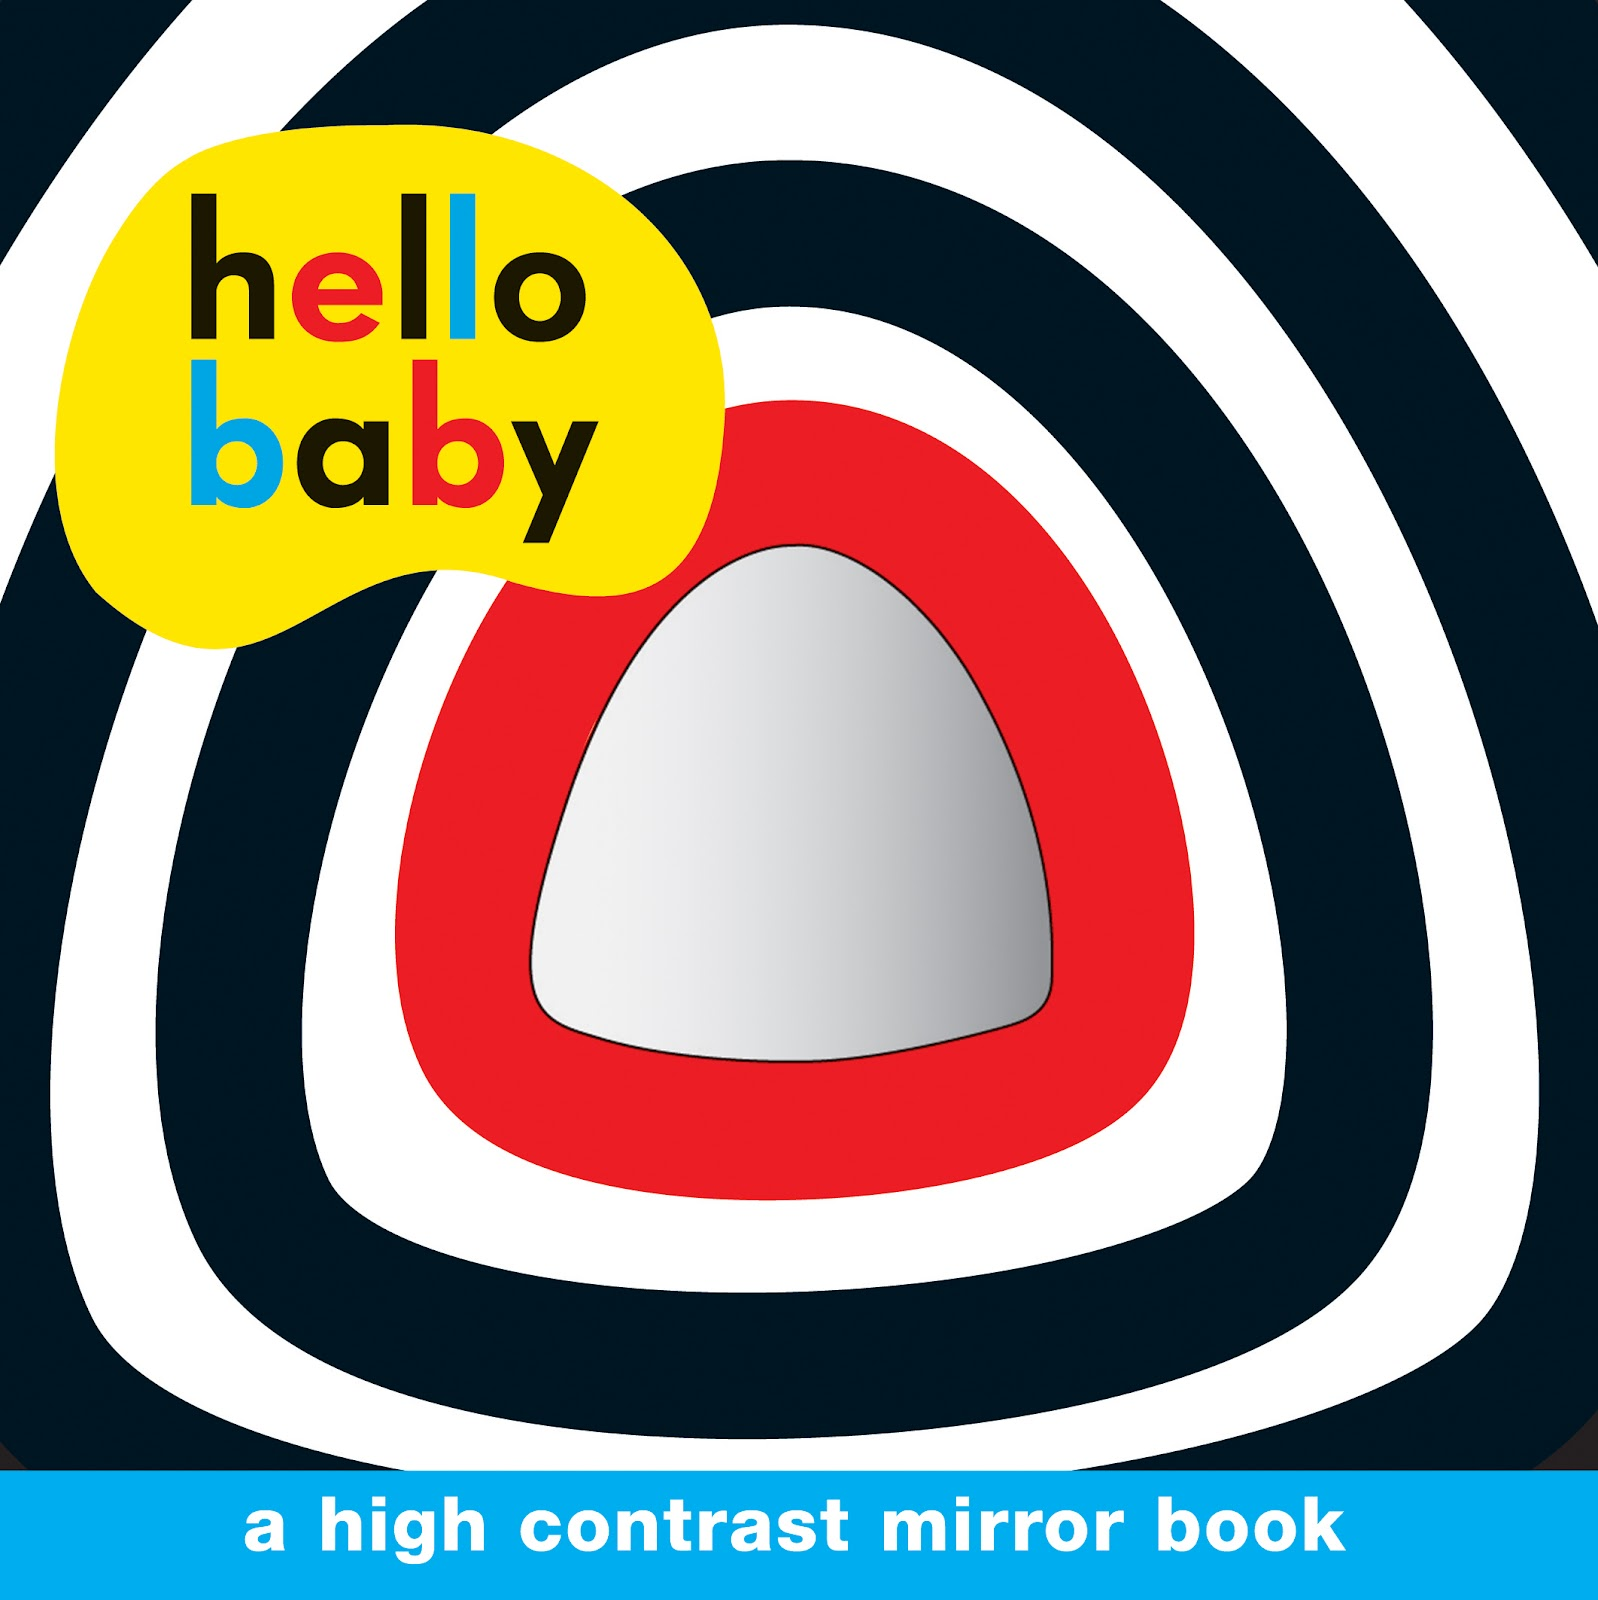 Mellow mummy hello baby mirror board book review taking for Mirror books